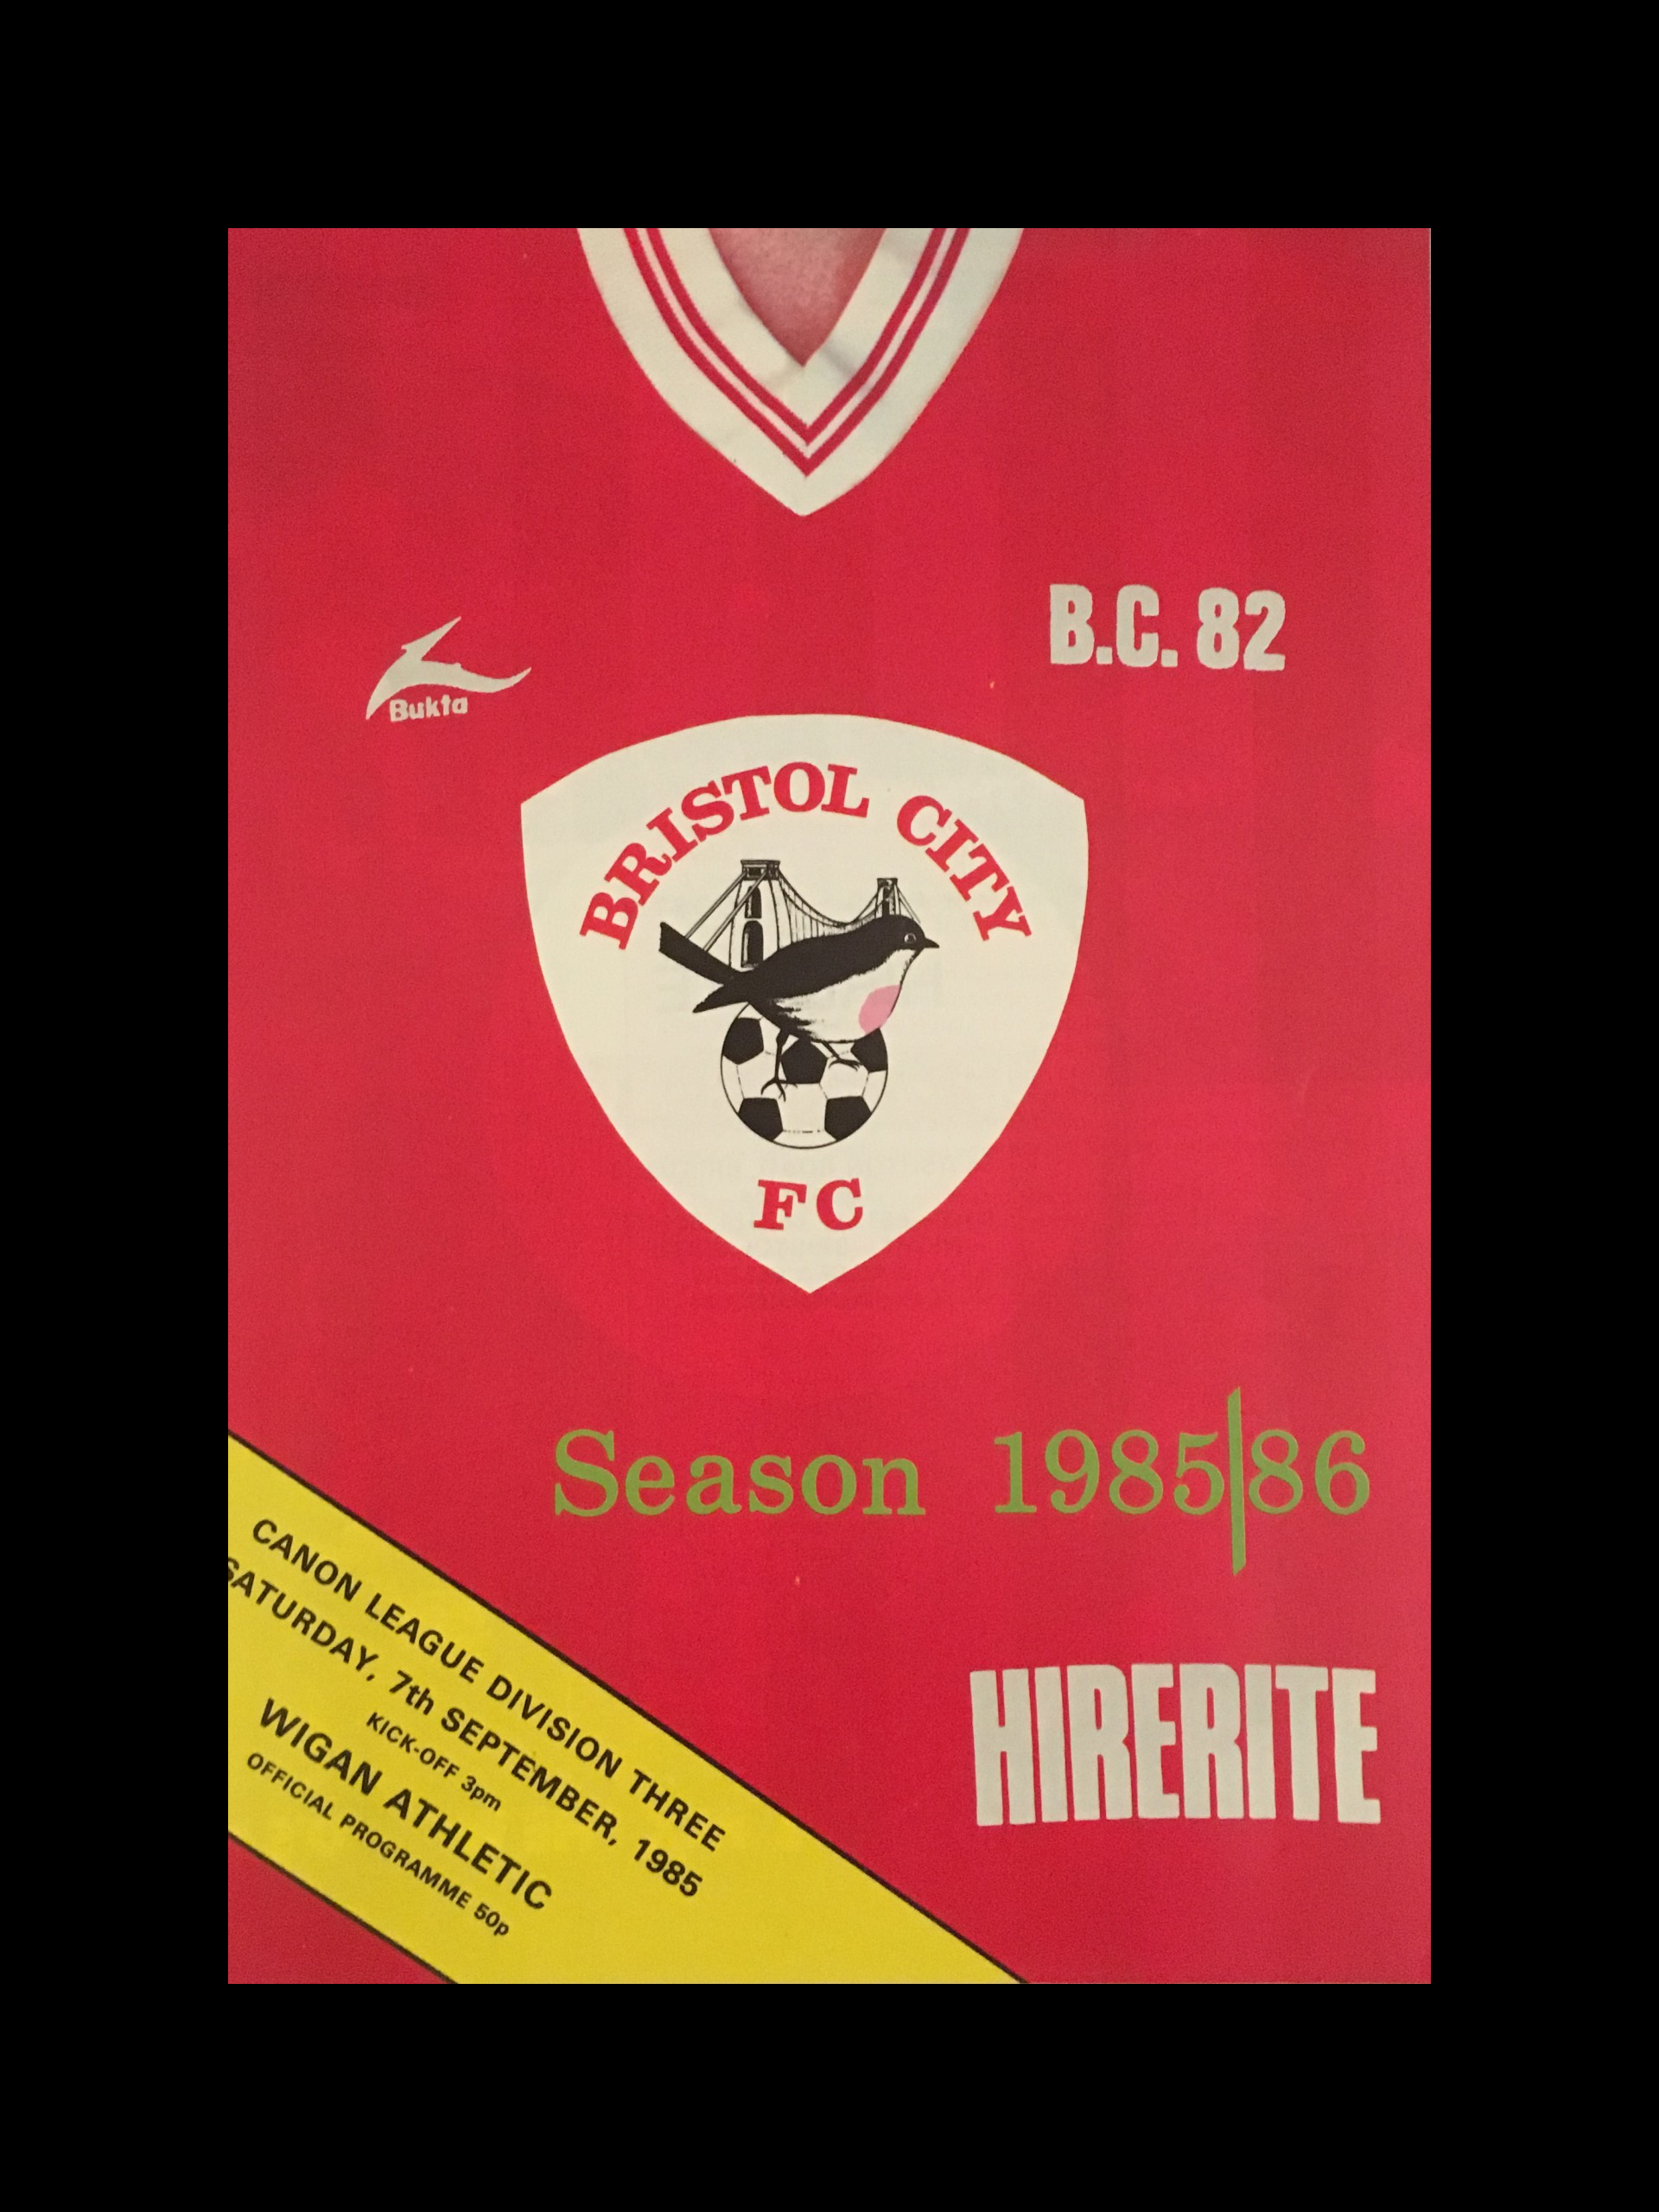 Bristol City v Wigan Athletic 07-09-85 Programme